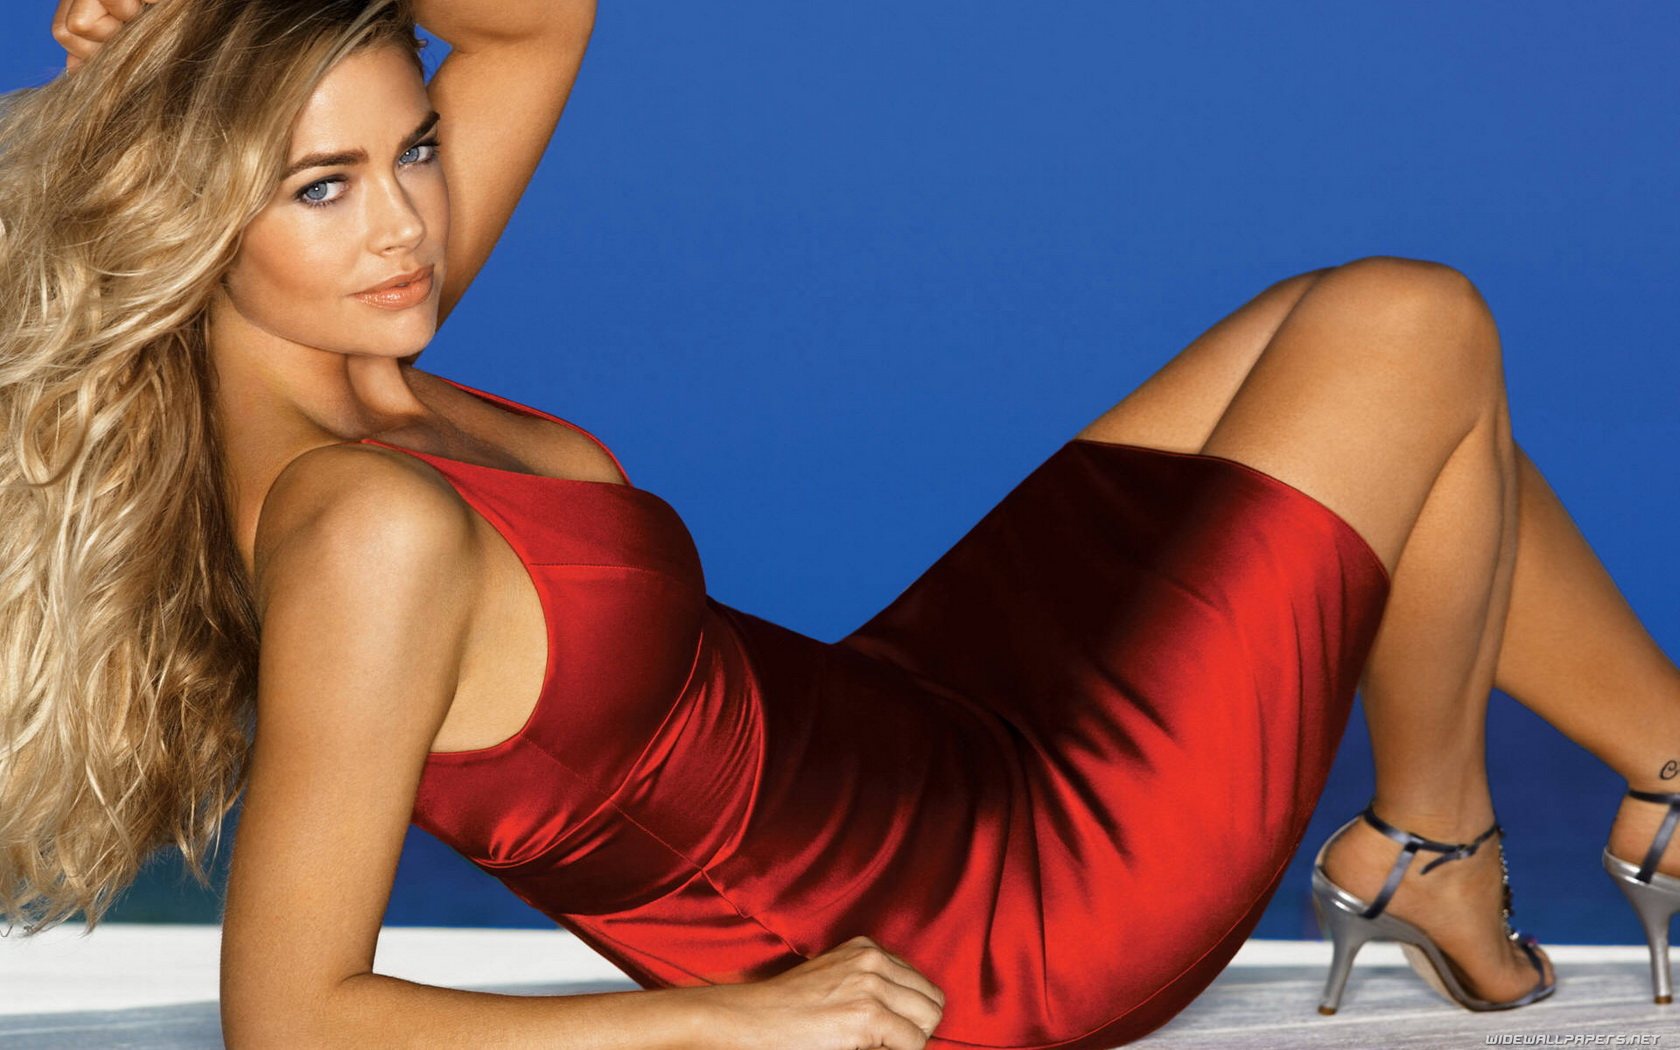 denise richards 1920x1200 wallpapers - photo #8